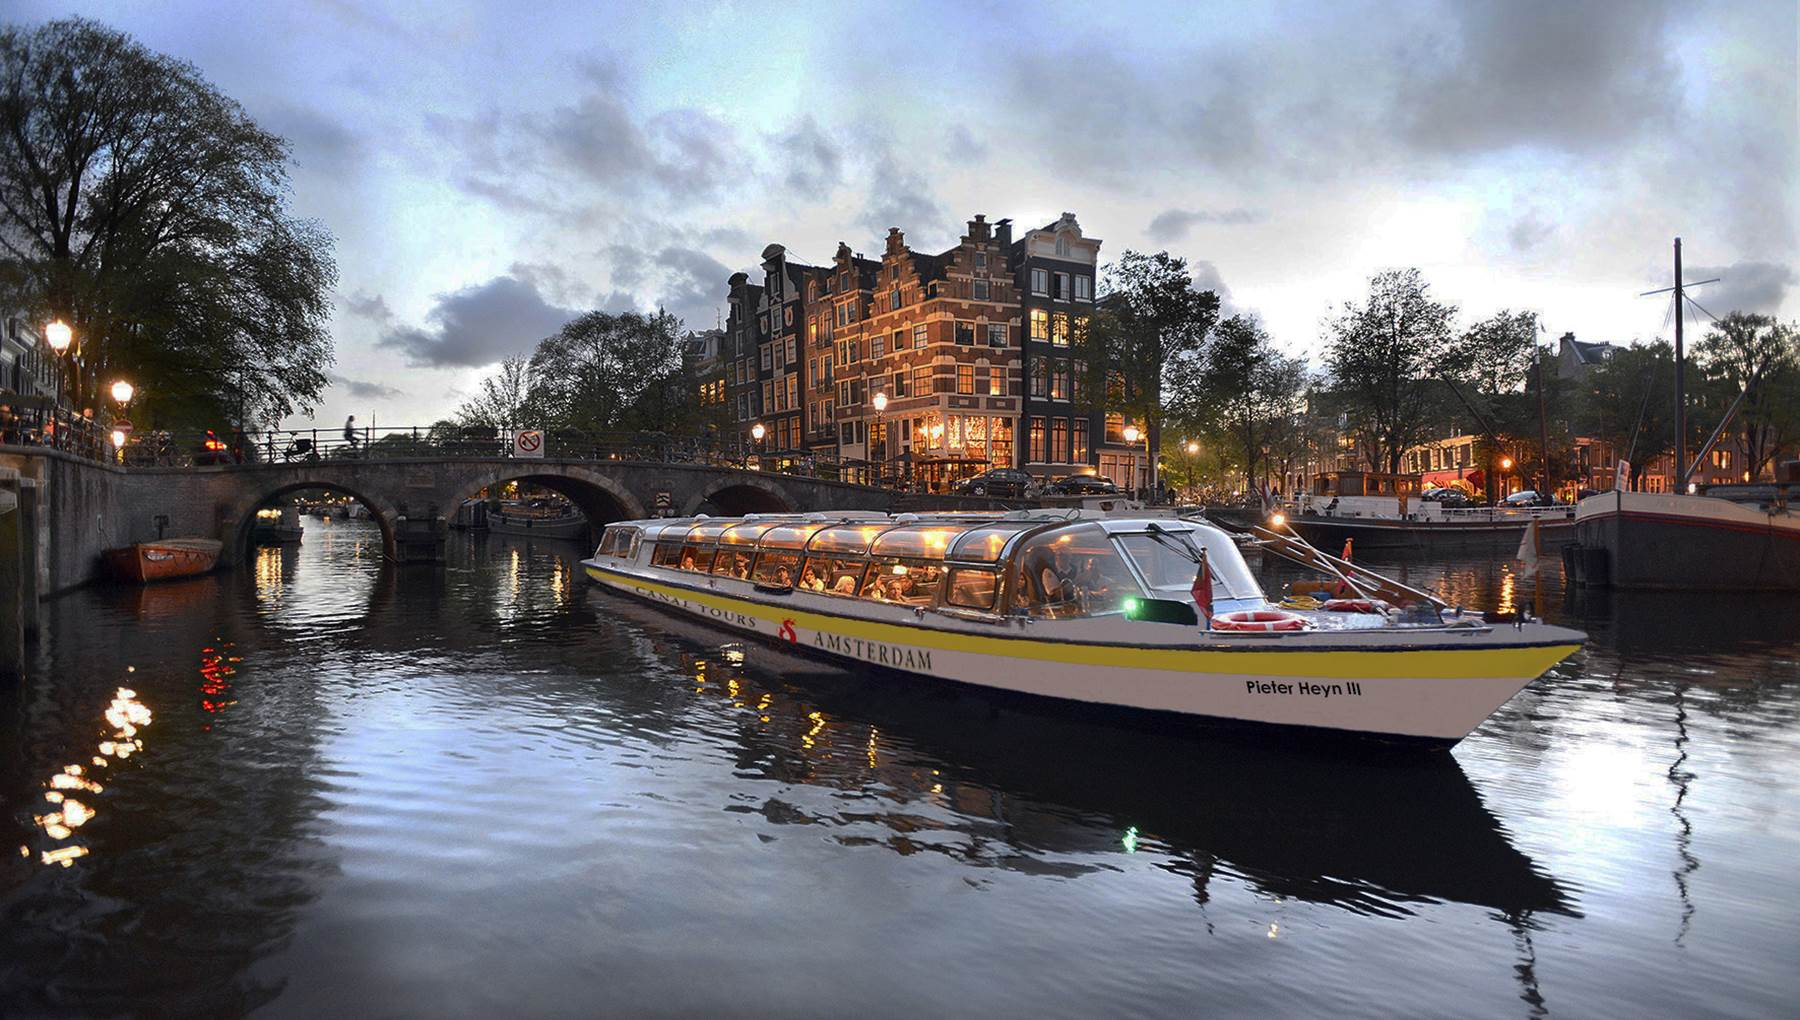 5 ways to wine and dine on the Amsterdam canals | I amsterdam